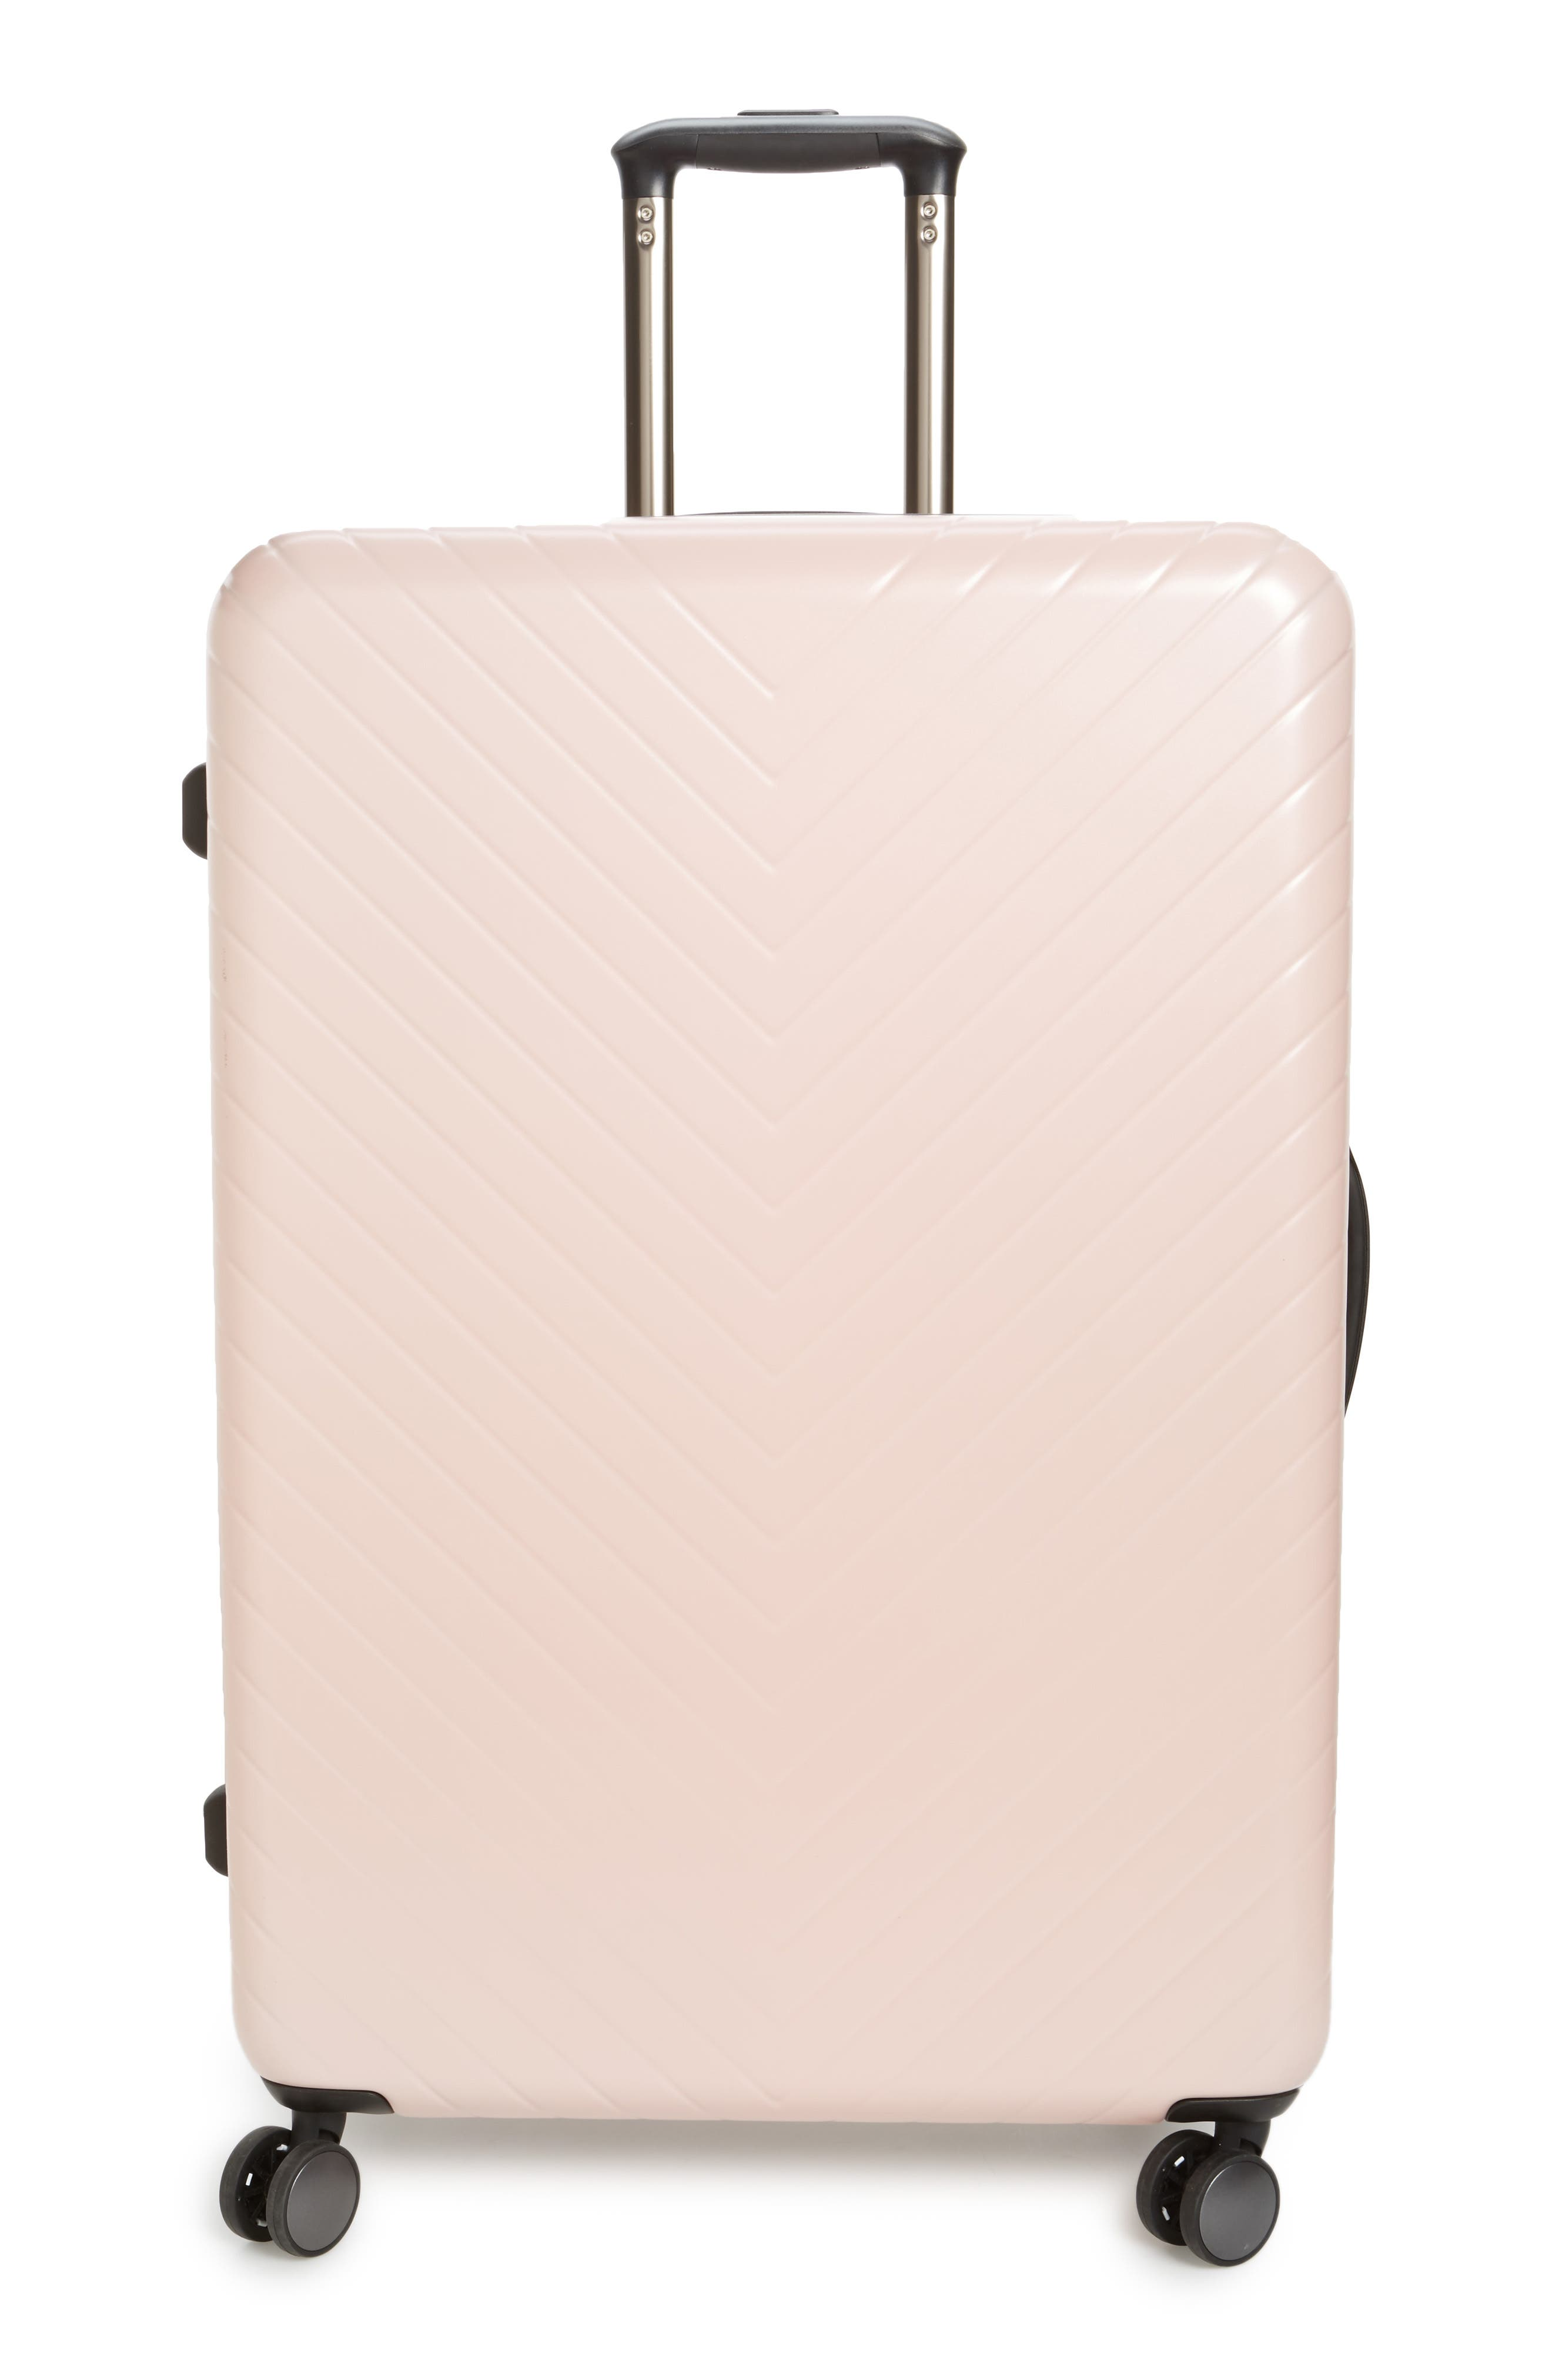 Chevron 29-Inch Spinner Suitcase,                             Main thumbnail 1, color,                             PINK HERO